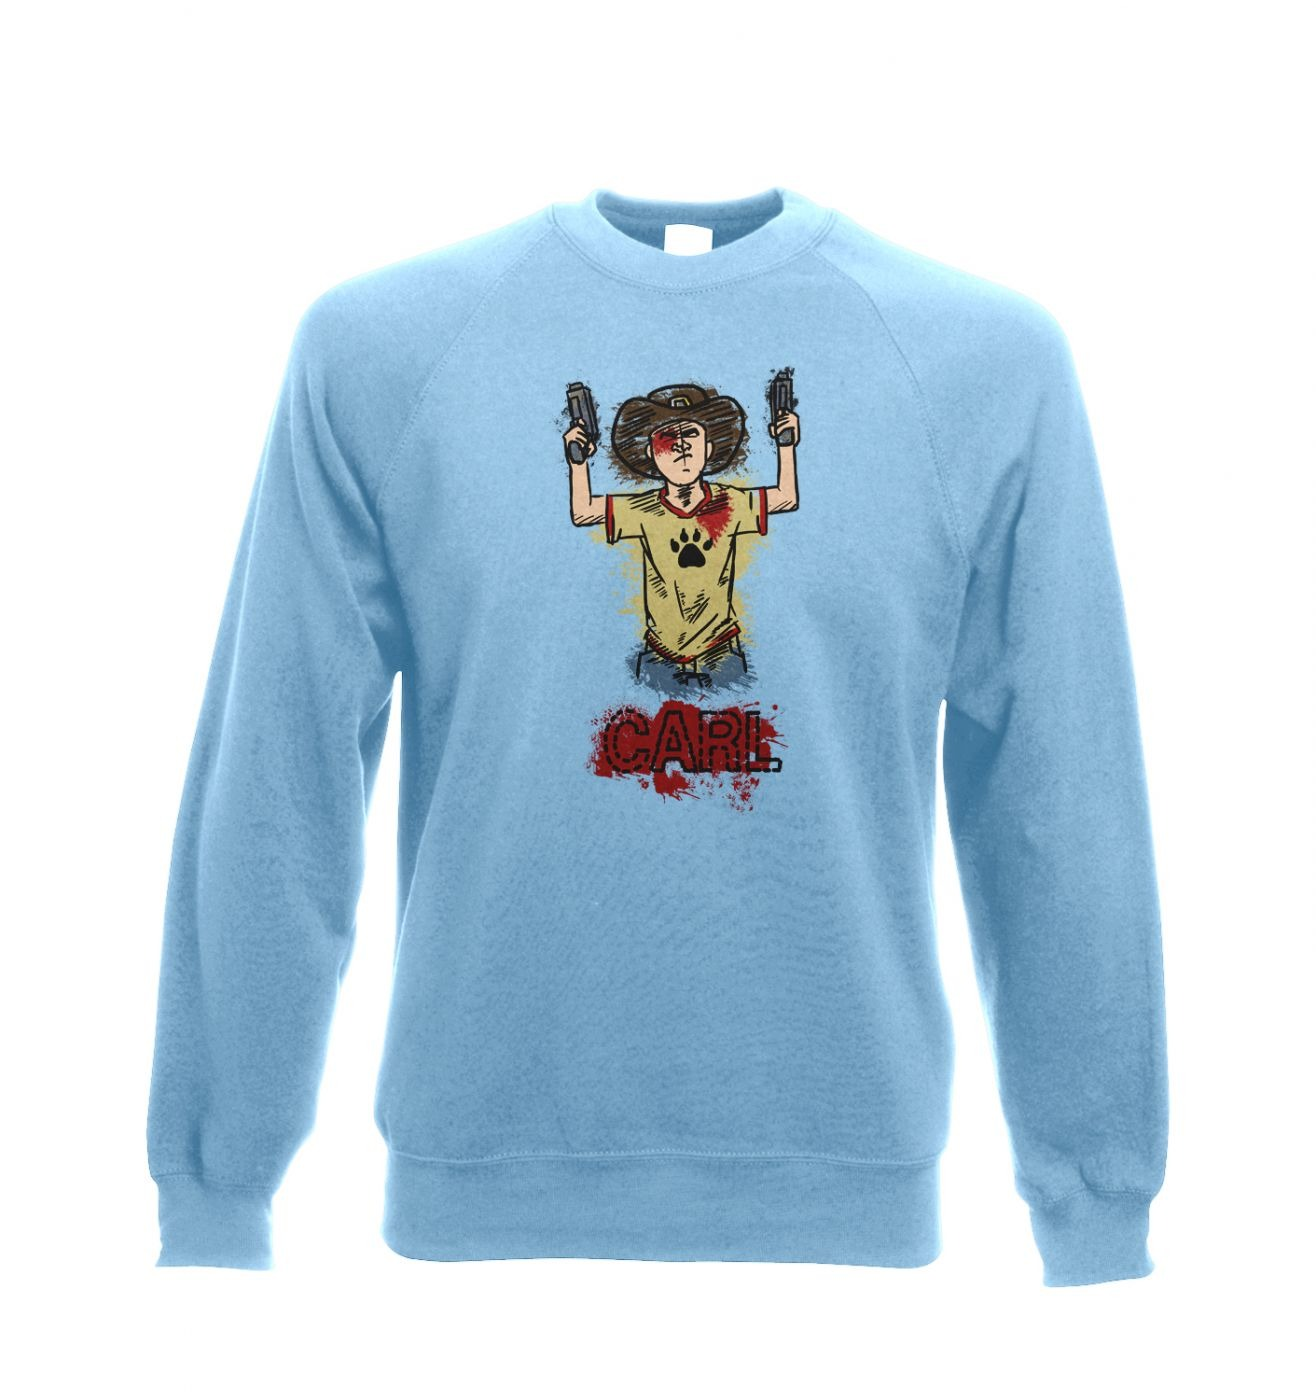 Kid with guns crewneck sweatshirt